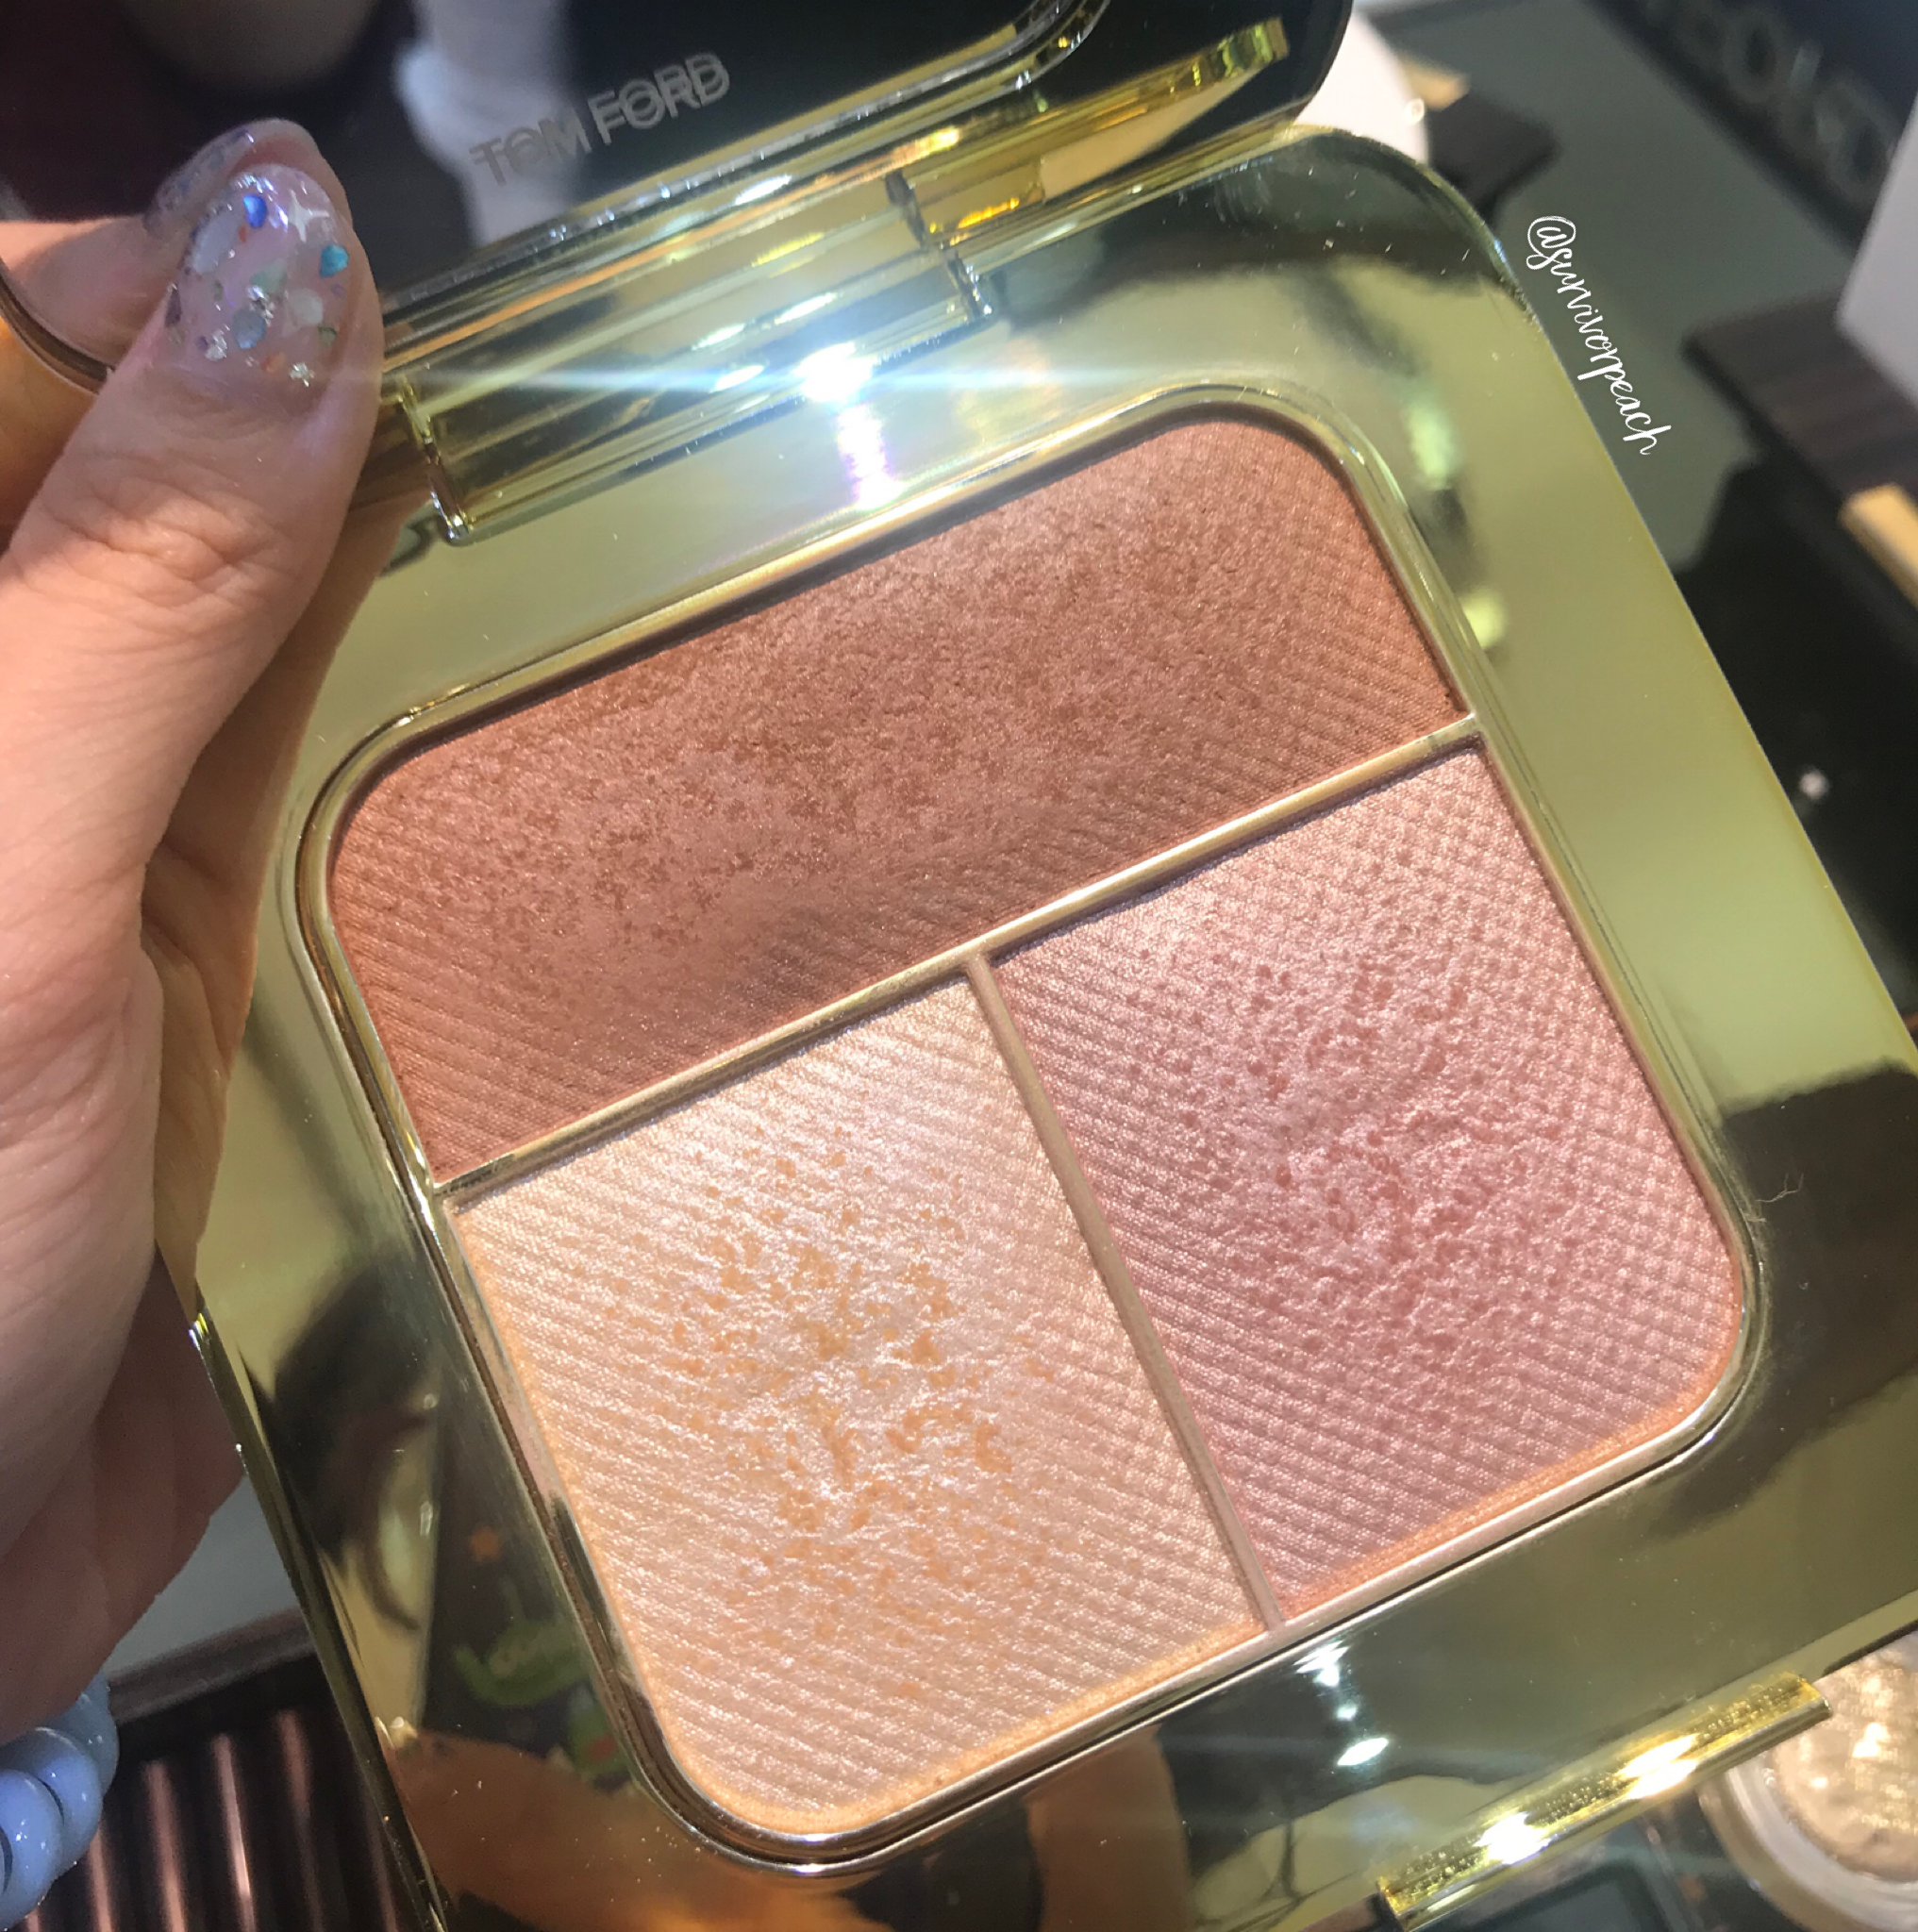 Tom Ford Bask Contouring compact